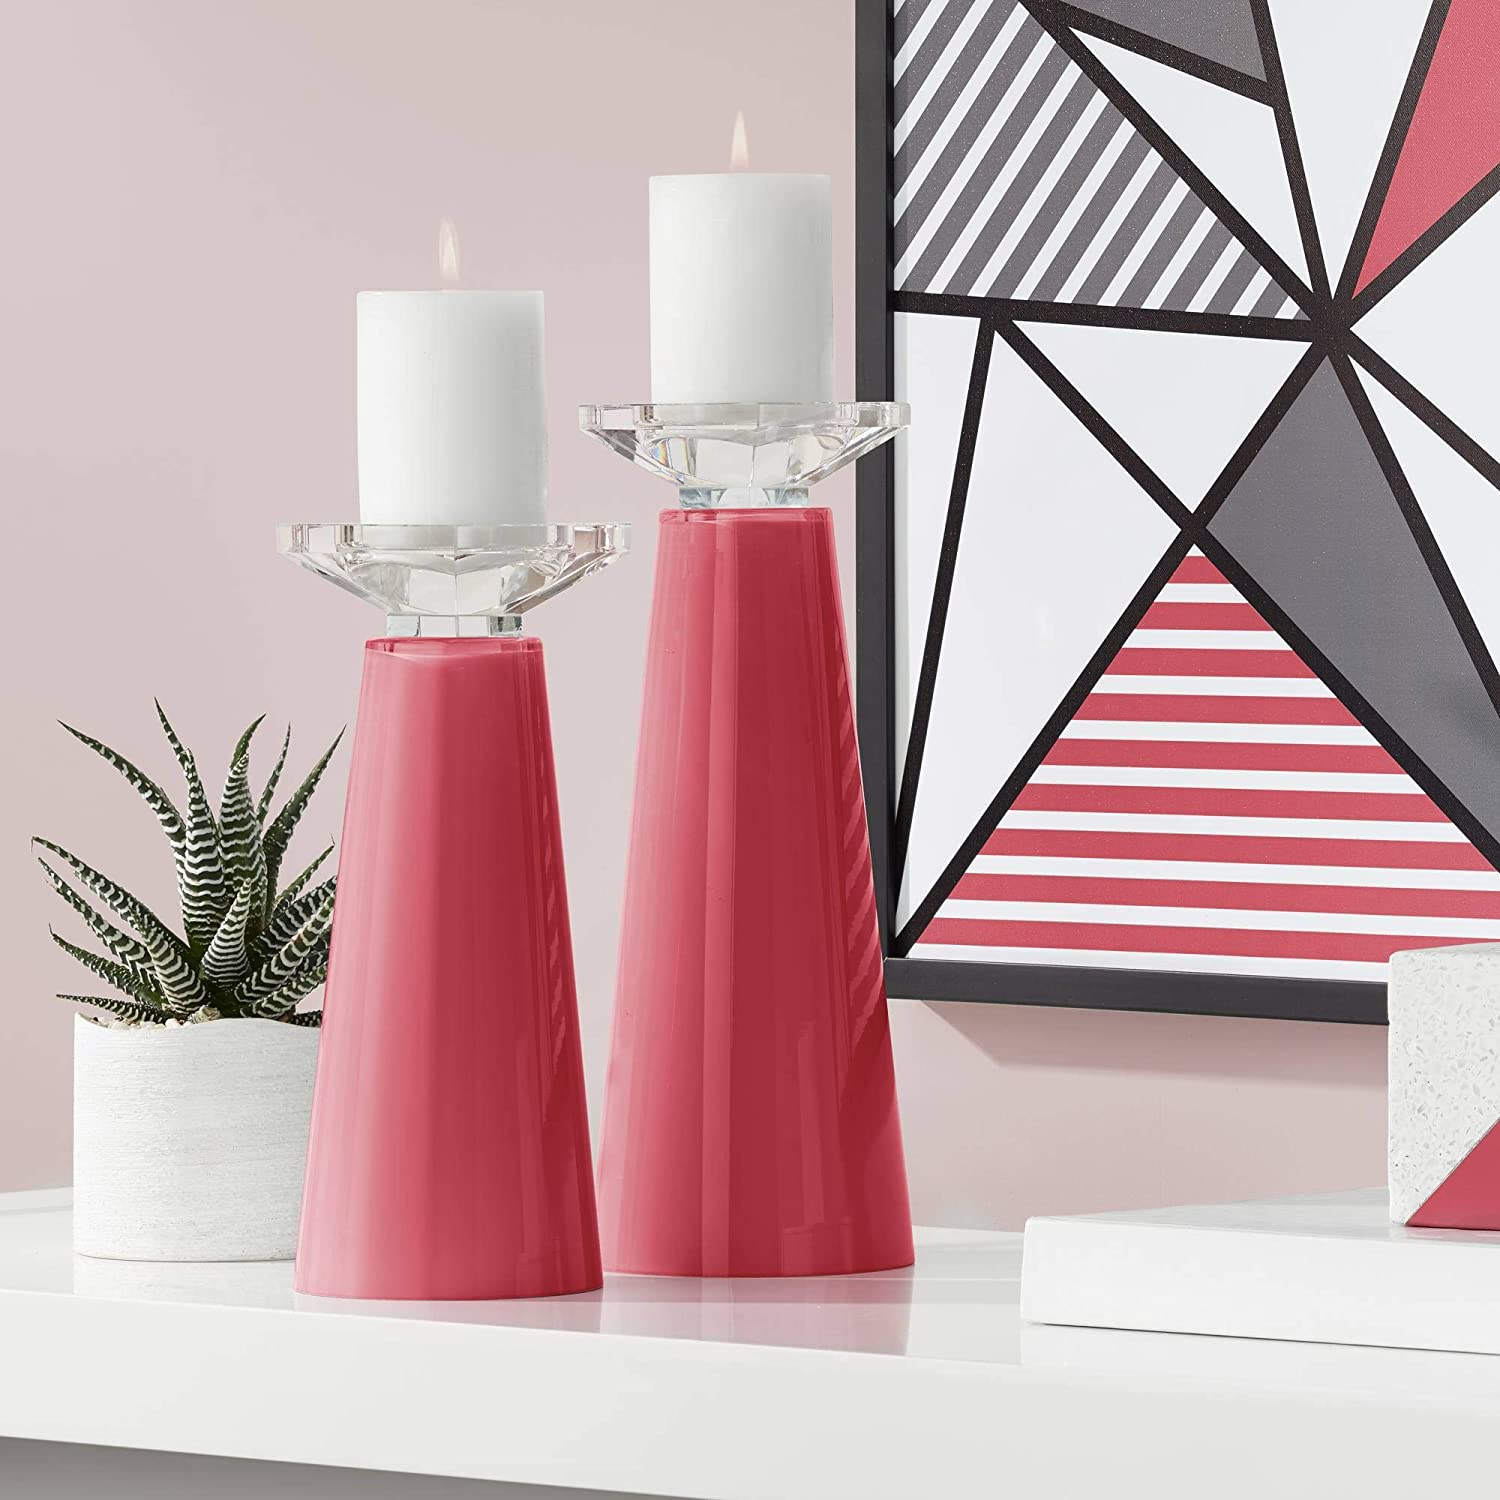 Superior Color + Plus Meghan Samba Glass Candle of Cheap mail order specialty store 2 Pillar Holder Set